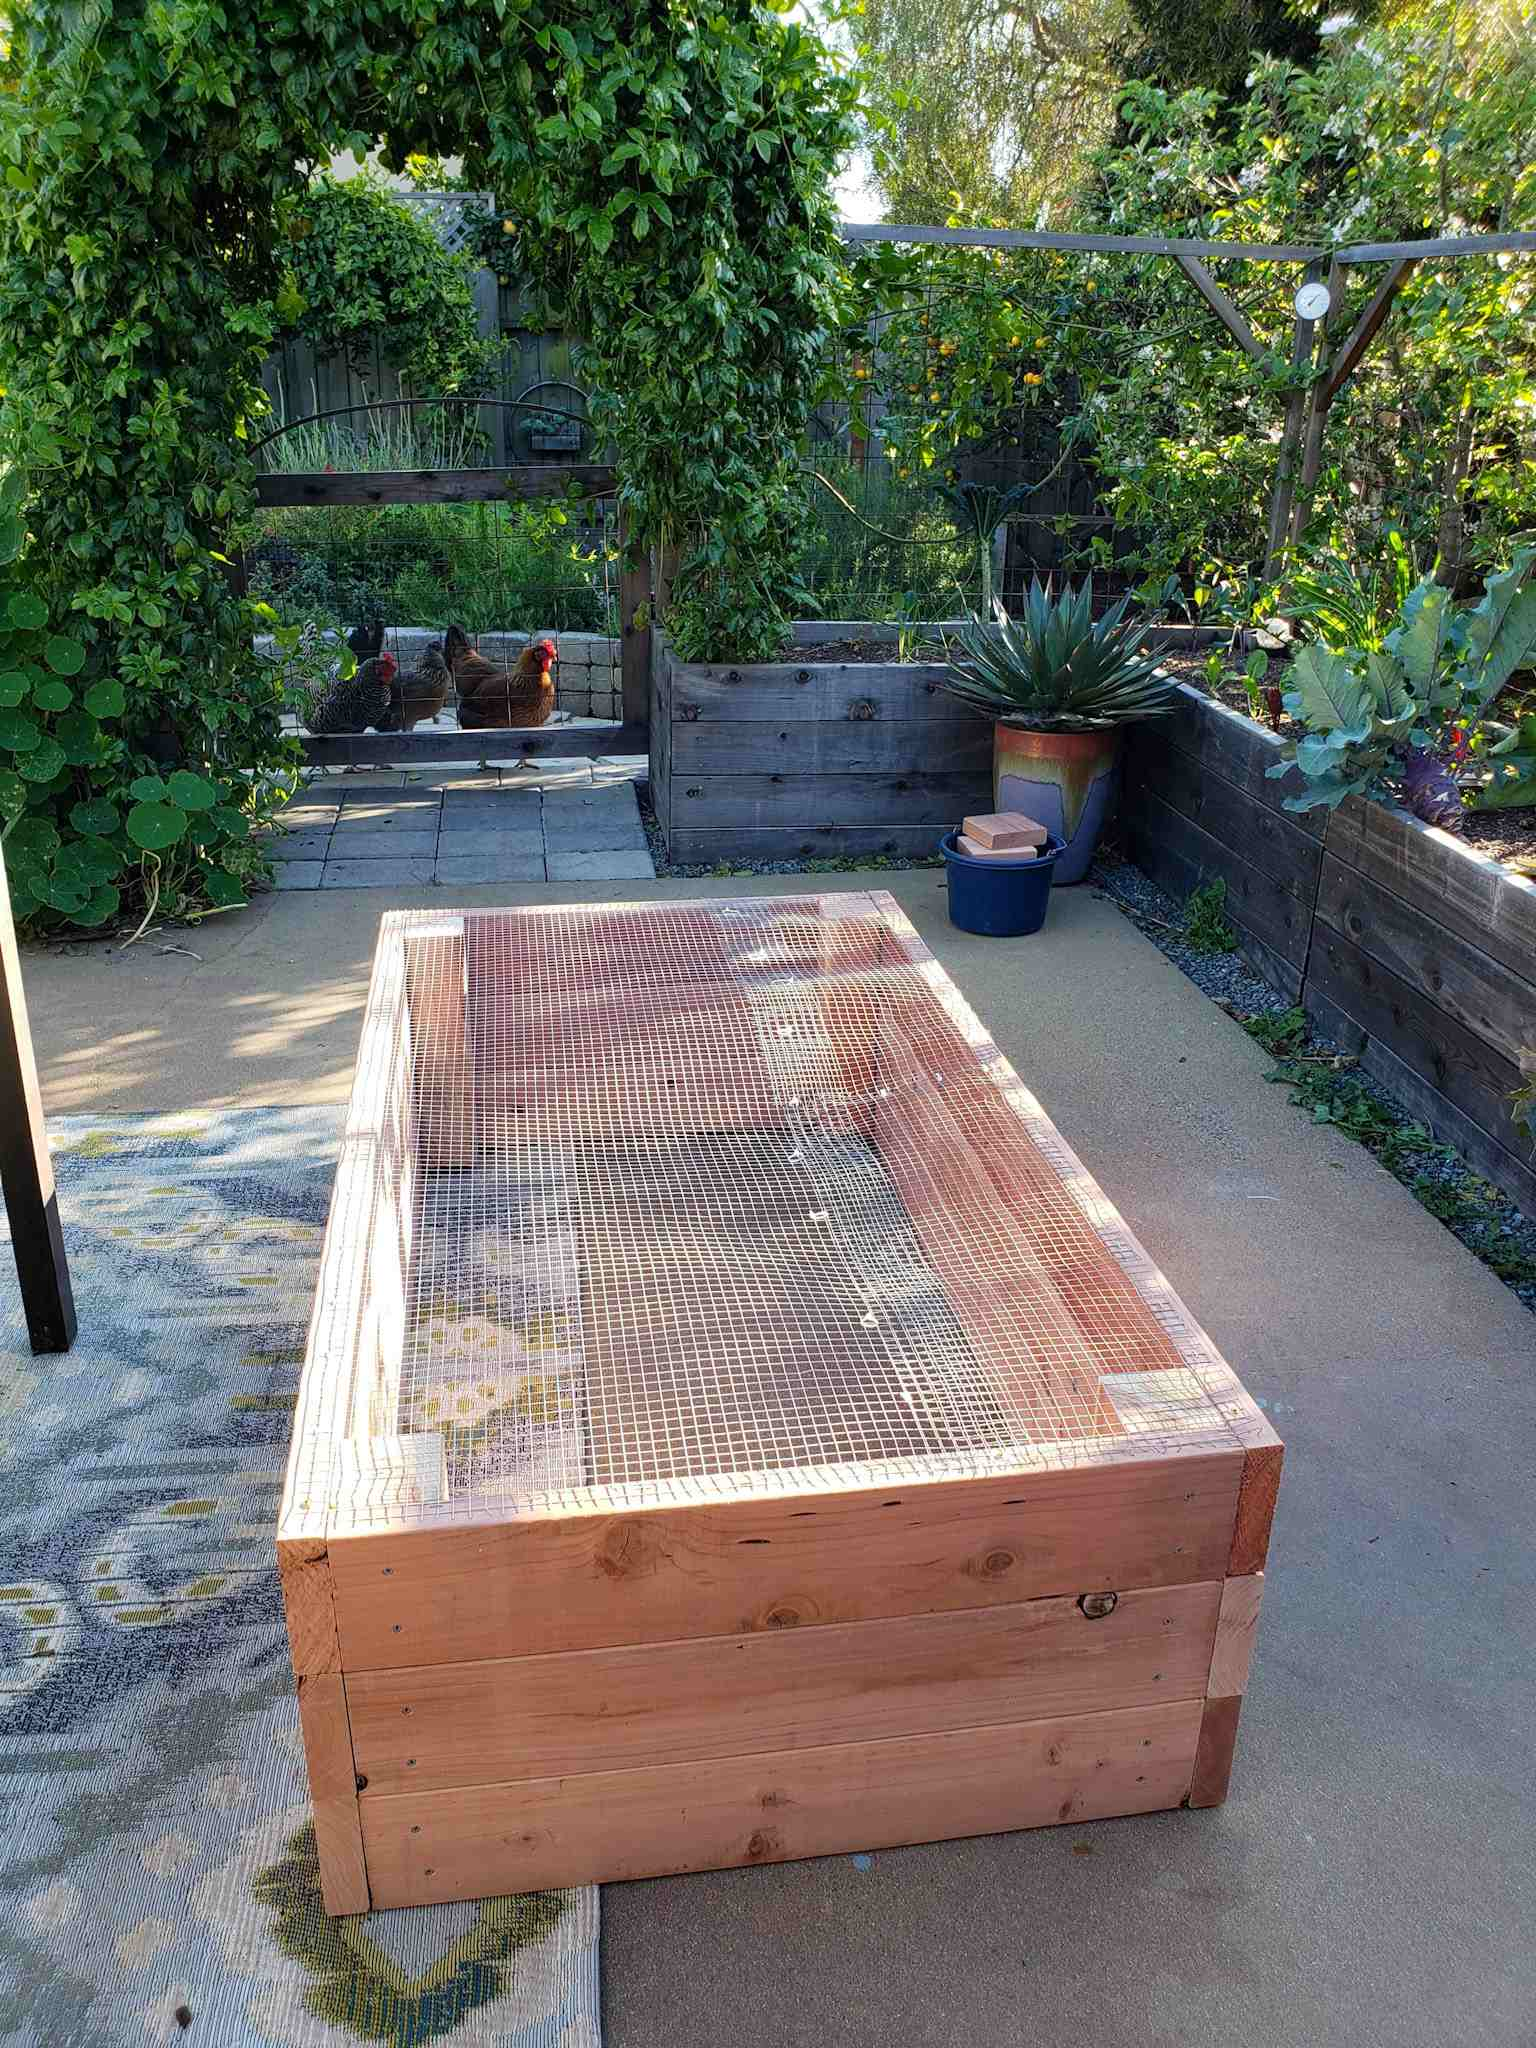 Picture of: Raised Garden Beds Vs In Ground Beds Pros Cons Homestead And Chill